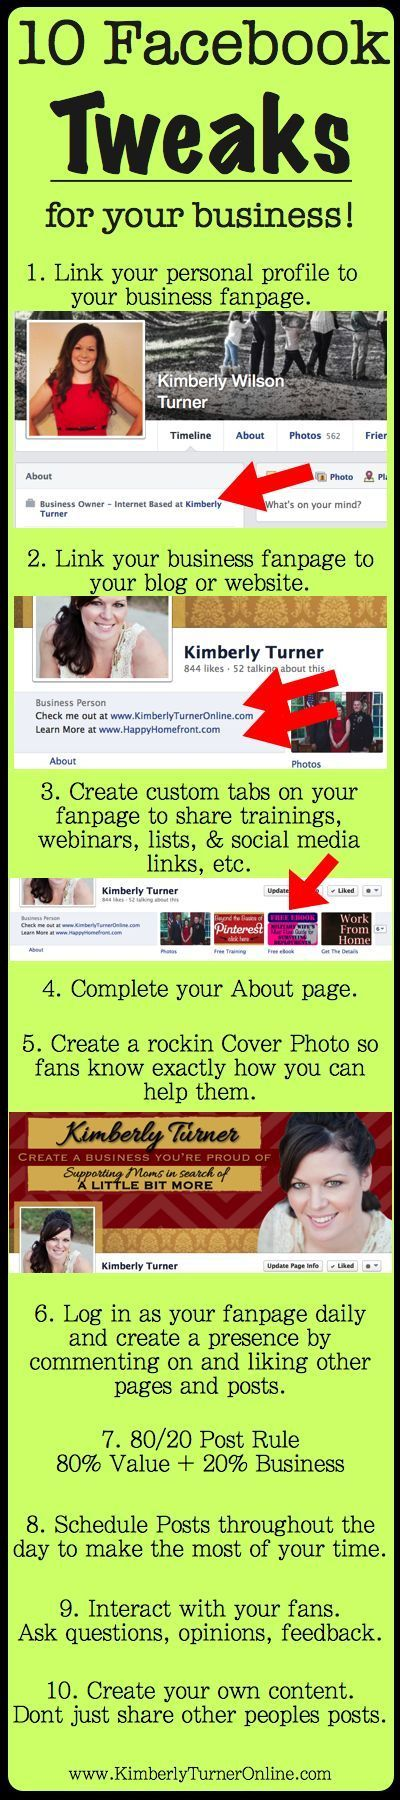 10 Facebook Tweaks for your Business. #facebook